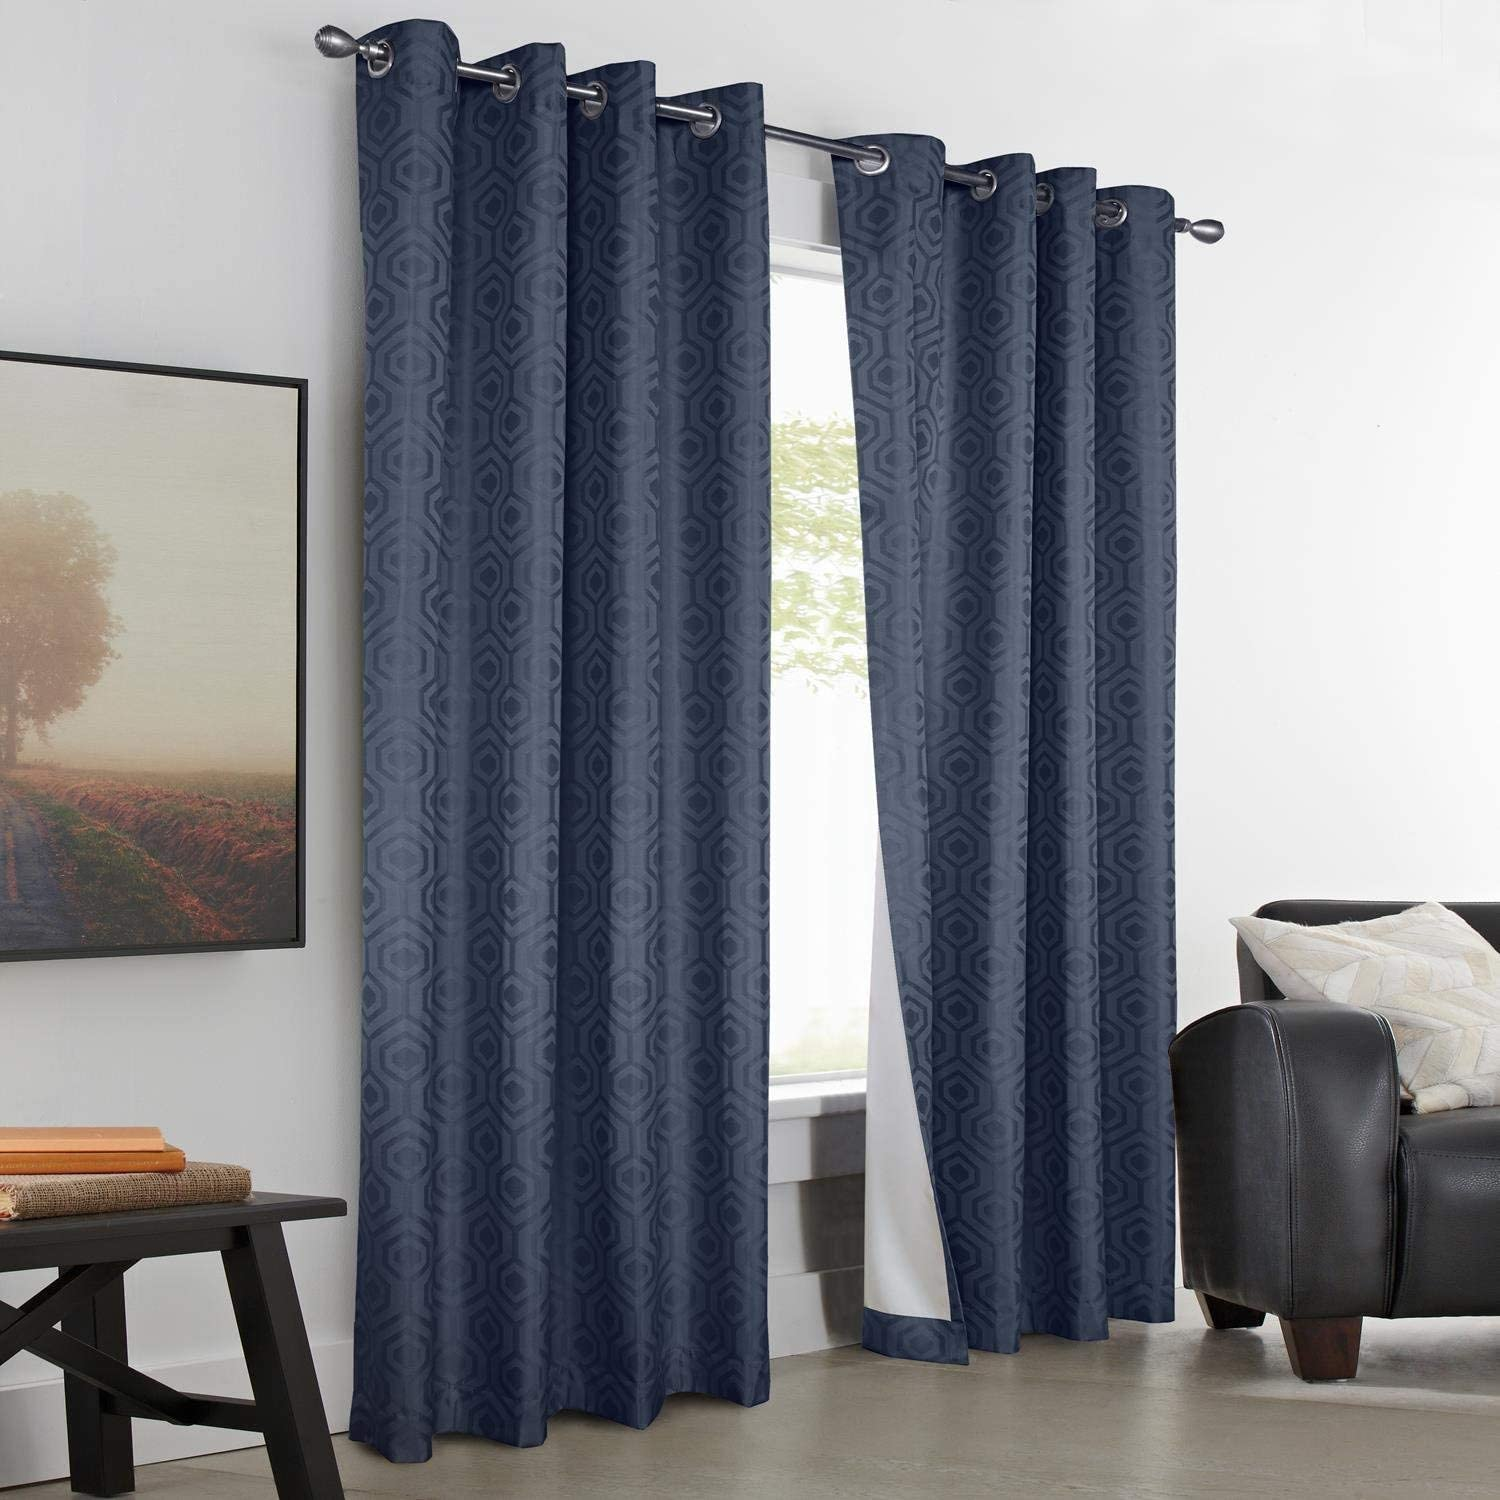 "Common Wealth Home Fashions High Gate Insulated Blackout"" Curtains with Geometric Pattern"